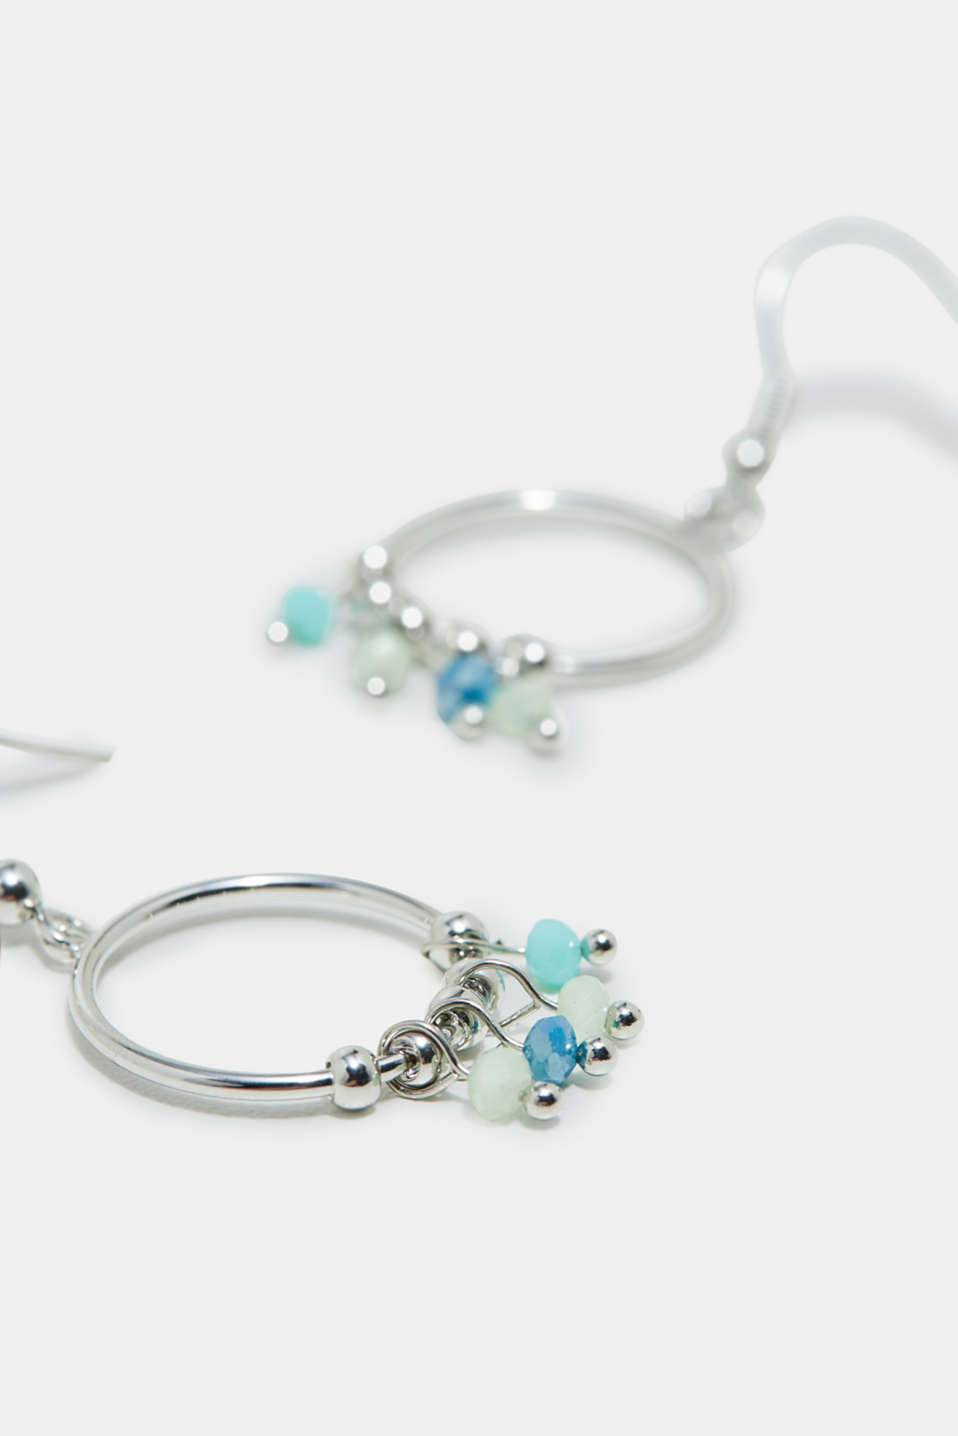 Earrings with hoops and gemstones